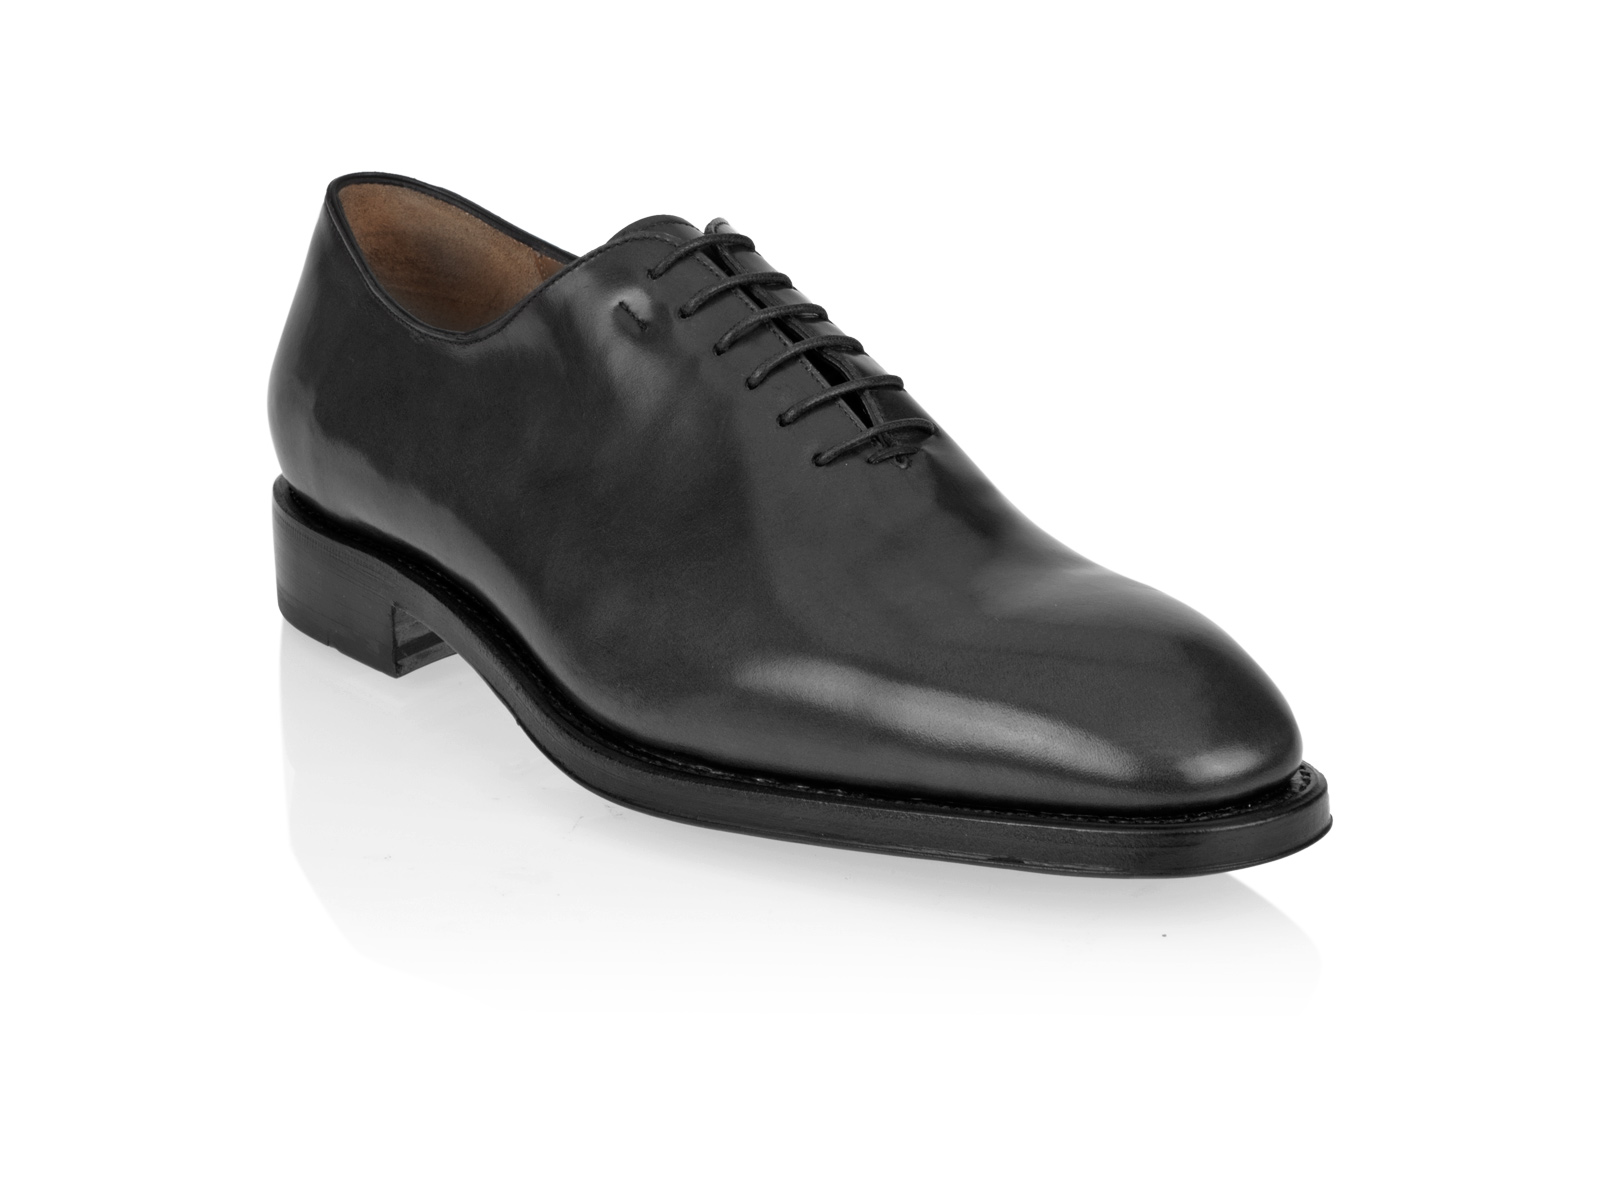 Buy Cole Haan Men's Carter Grand Plain Oxford and other Oxfords at shopnow-62mfbrnp.ga Our wide selection is eligible for free shipping and free returns.